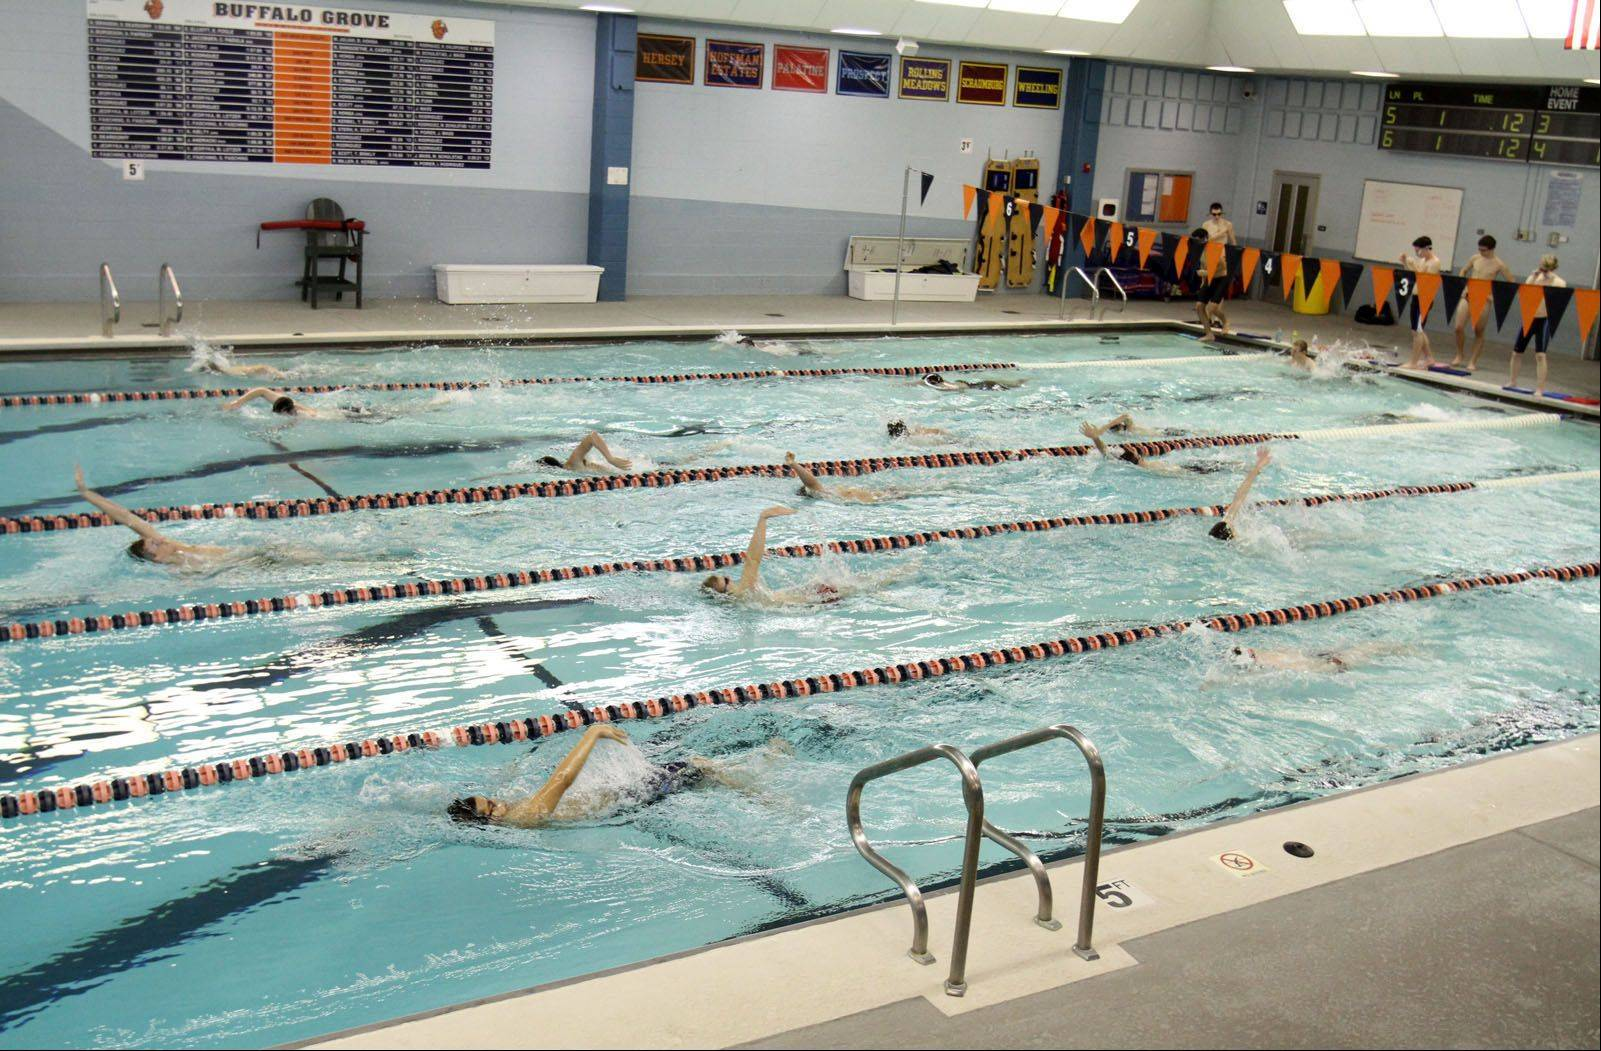 Buffalo Grove High School's pool is getting an $11 million renovation, but three schools ion Northwest Suburban High School District 214 have no pools at all. One option to address this proposed to school leaders this month is the construction of a large aquatic facility to serve multiple schools.